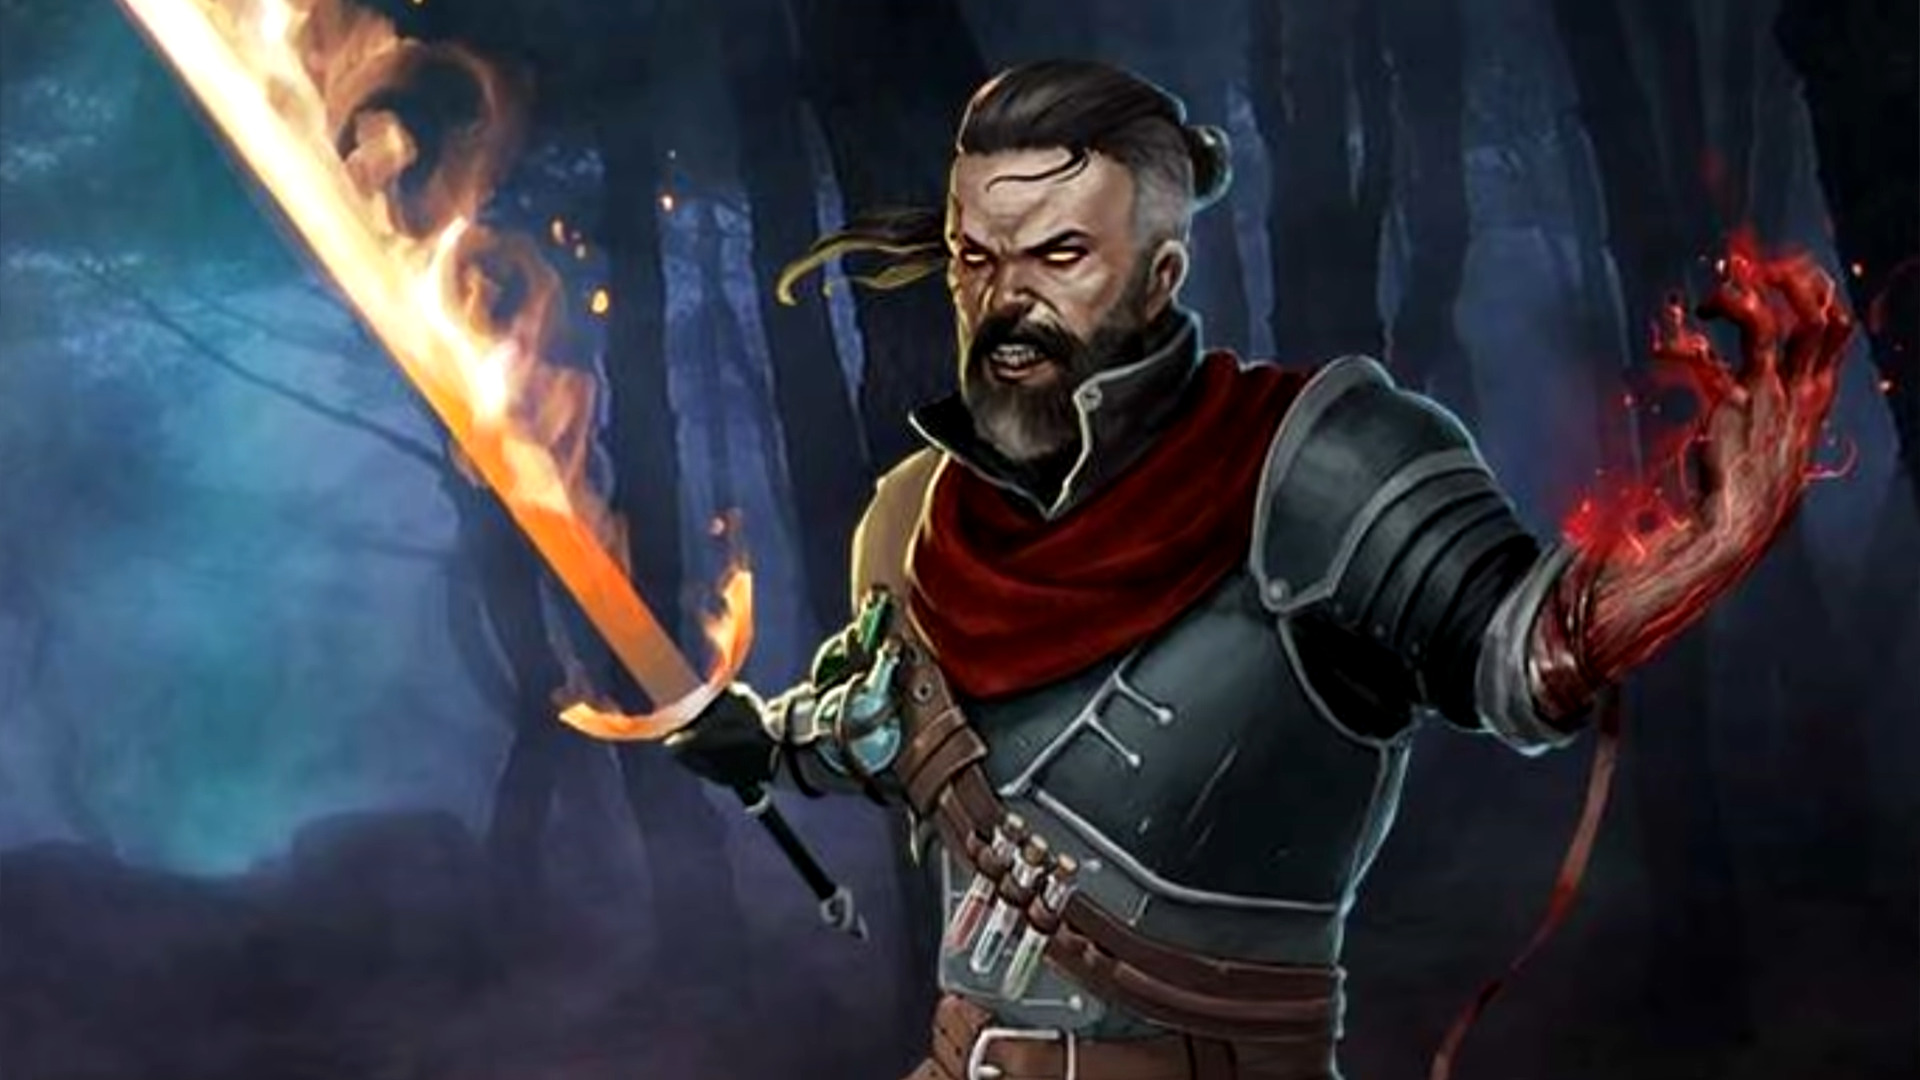 A Blood Hunter's Guide To 5e: A Few Simple Things Every Blood Hunter Should Know In Dungeons And Dragons